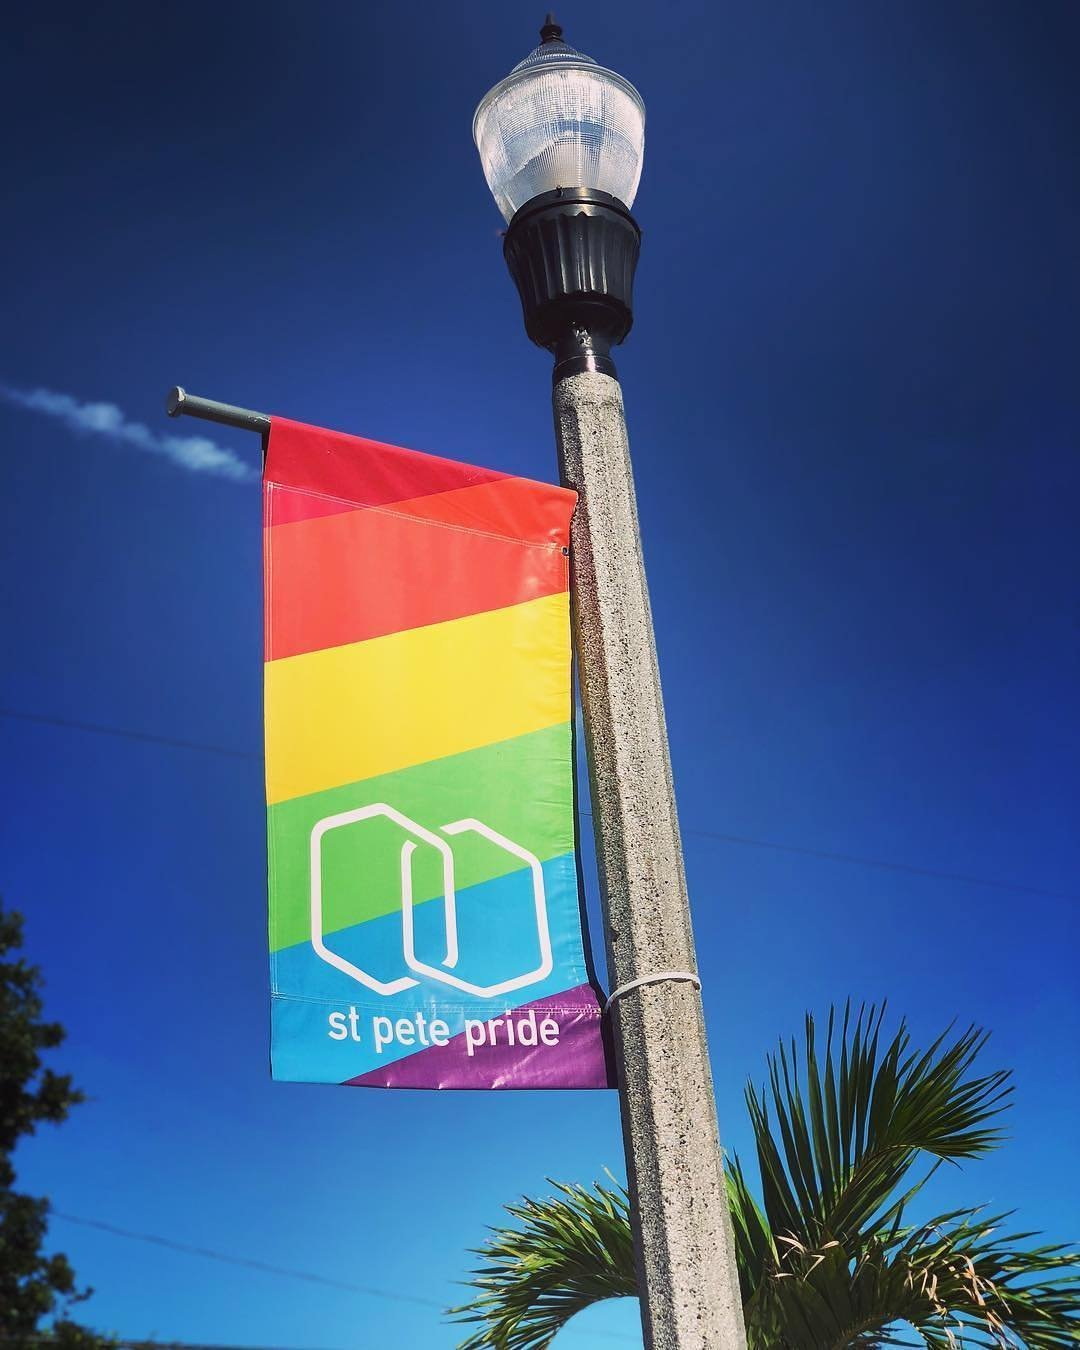 Our #SummerofOurIndependents Feature today could only be about ✨🏳️‍🌈 @stpetepride 🏳️‍🌈✨! ❤️💛💚💙💜 Did you know it's the largest #Pride celebration in Florida 🌴 & has also been named one of the world's best? Nearly a quarter of a million people will attend this weekend's events, including tonight's parade in #DTSP & tomorrow's festival in the @grandcentralsp! 🙌 Thank you to all those involved (past & present) for all they've done to put our #StPetePride on the *world's* map 🗺 🌎! 👏 (📷: @paulius_photographia) . . . #LocalandProud #loveislove #lovewins #loveconquershate  #lgbtpride #prideweekend  #pride2018 #keepstpetelocal #KSPL #local #indie #loyaltolocal #localbusiness #supportlocal #locallove #lovefl #iheartstpete #ilovestpete #ilovetheburg #loveyourcity #lovewhereyoulive #liveamplified #sunshineshere #sunshinecity #stpetersburgfl #stpetefl